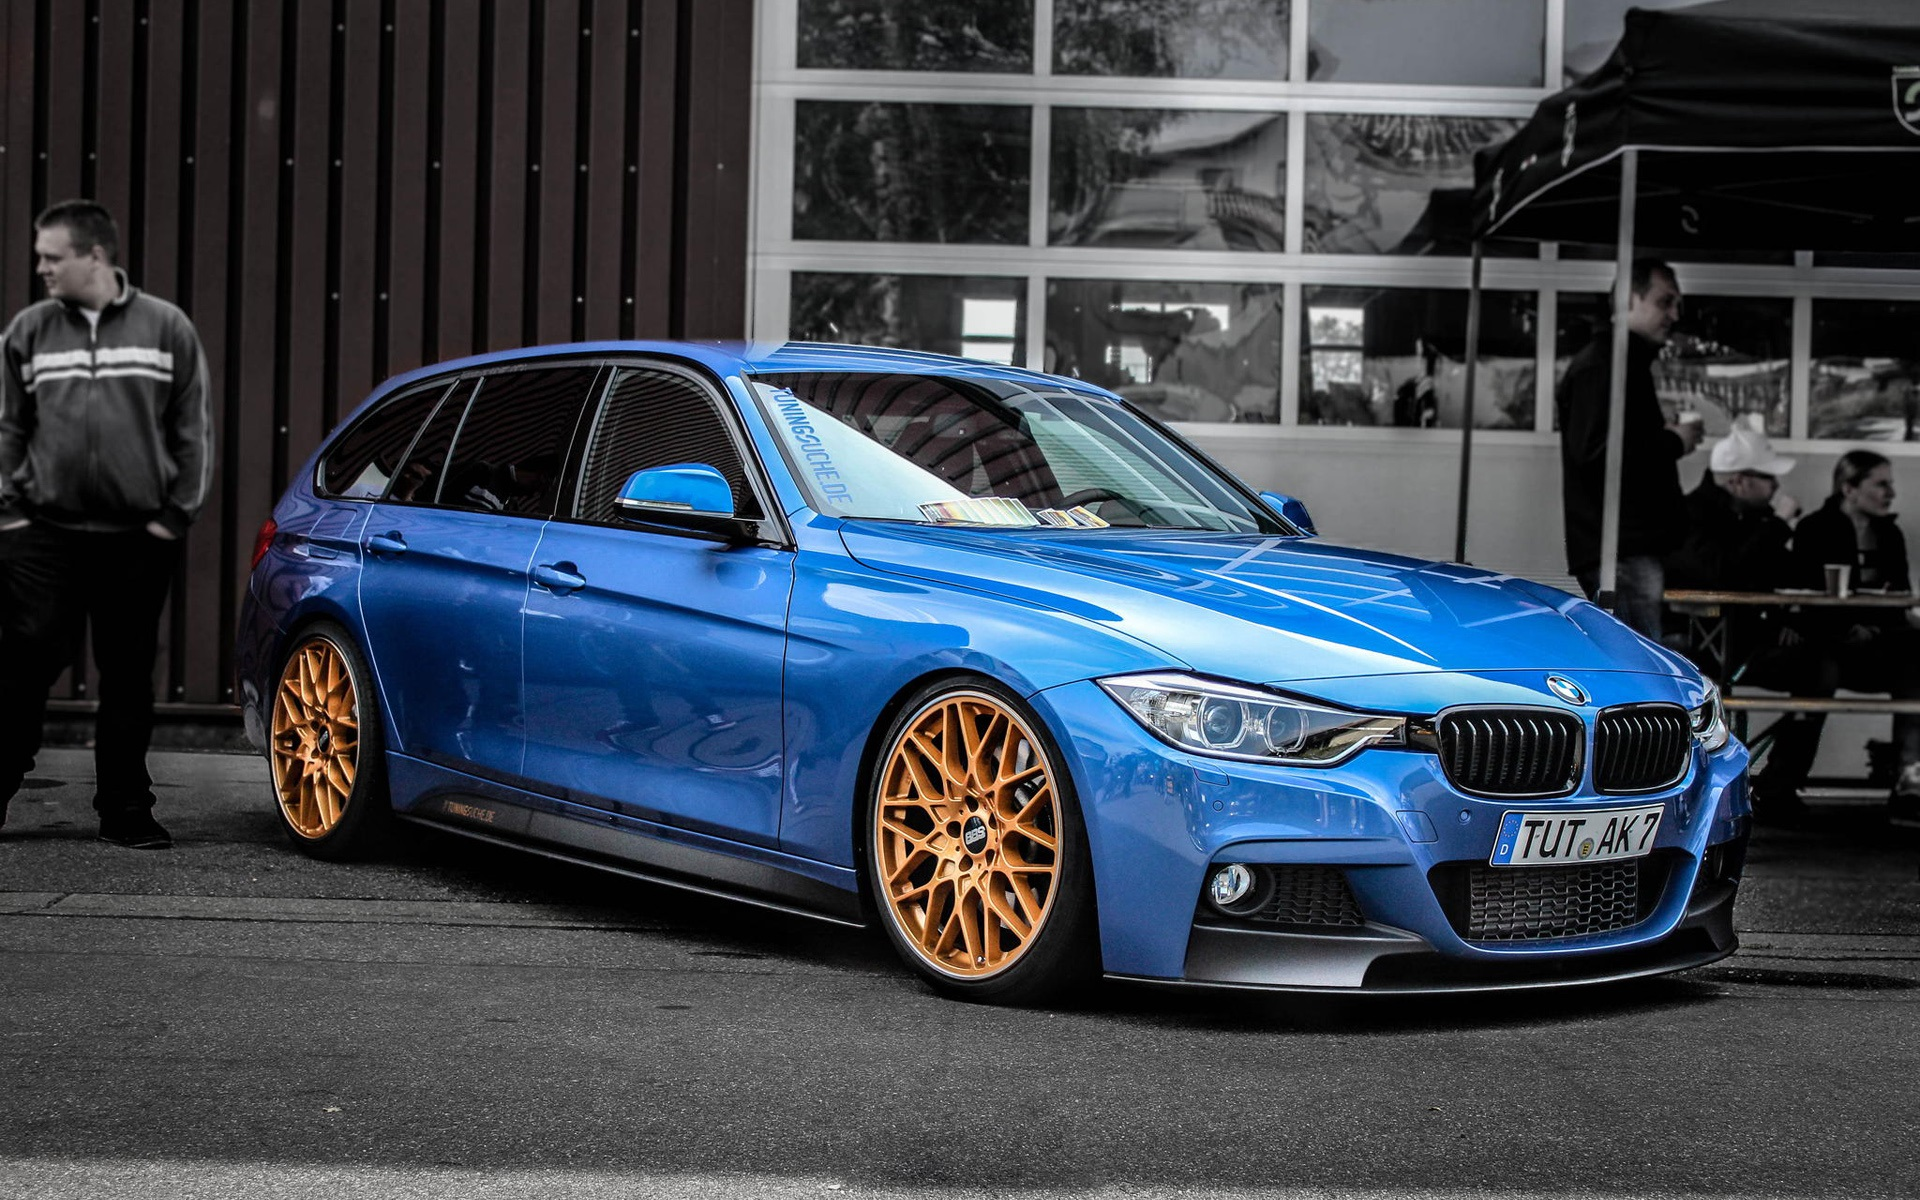 Wallpaper Bmw F30 330d Blue Car Side View 1920x1200 Hd Picture Image